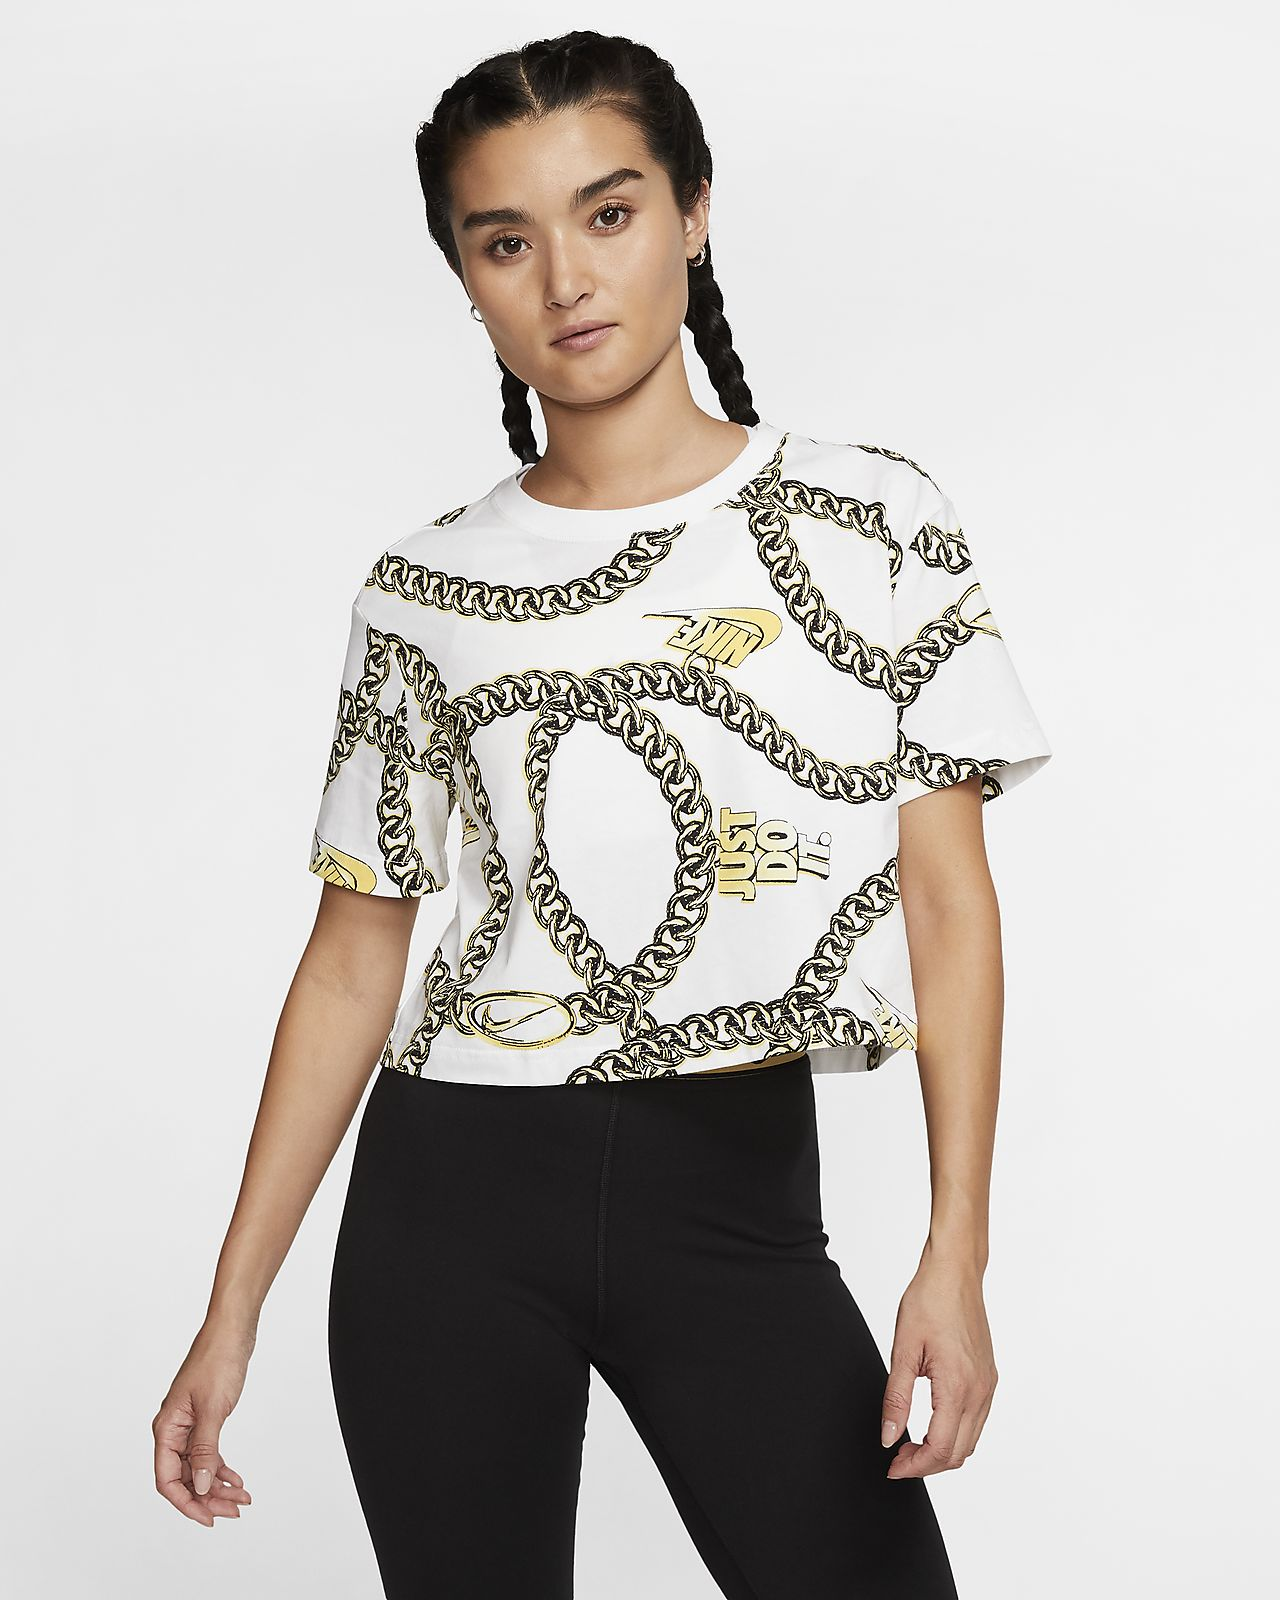 Nike Sportswear Women's Short Sleeve Crop Top